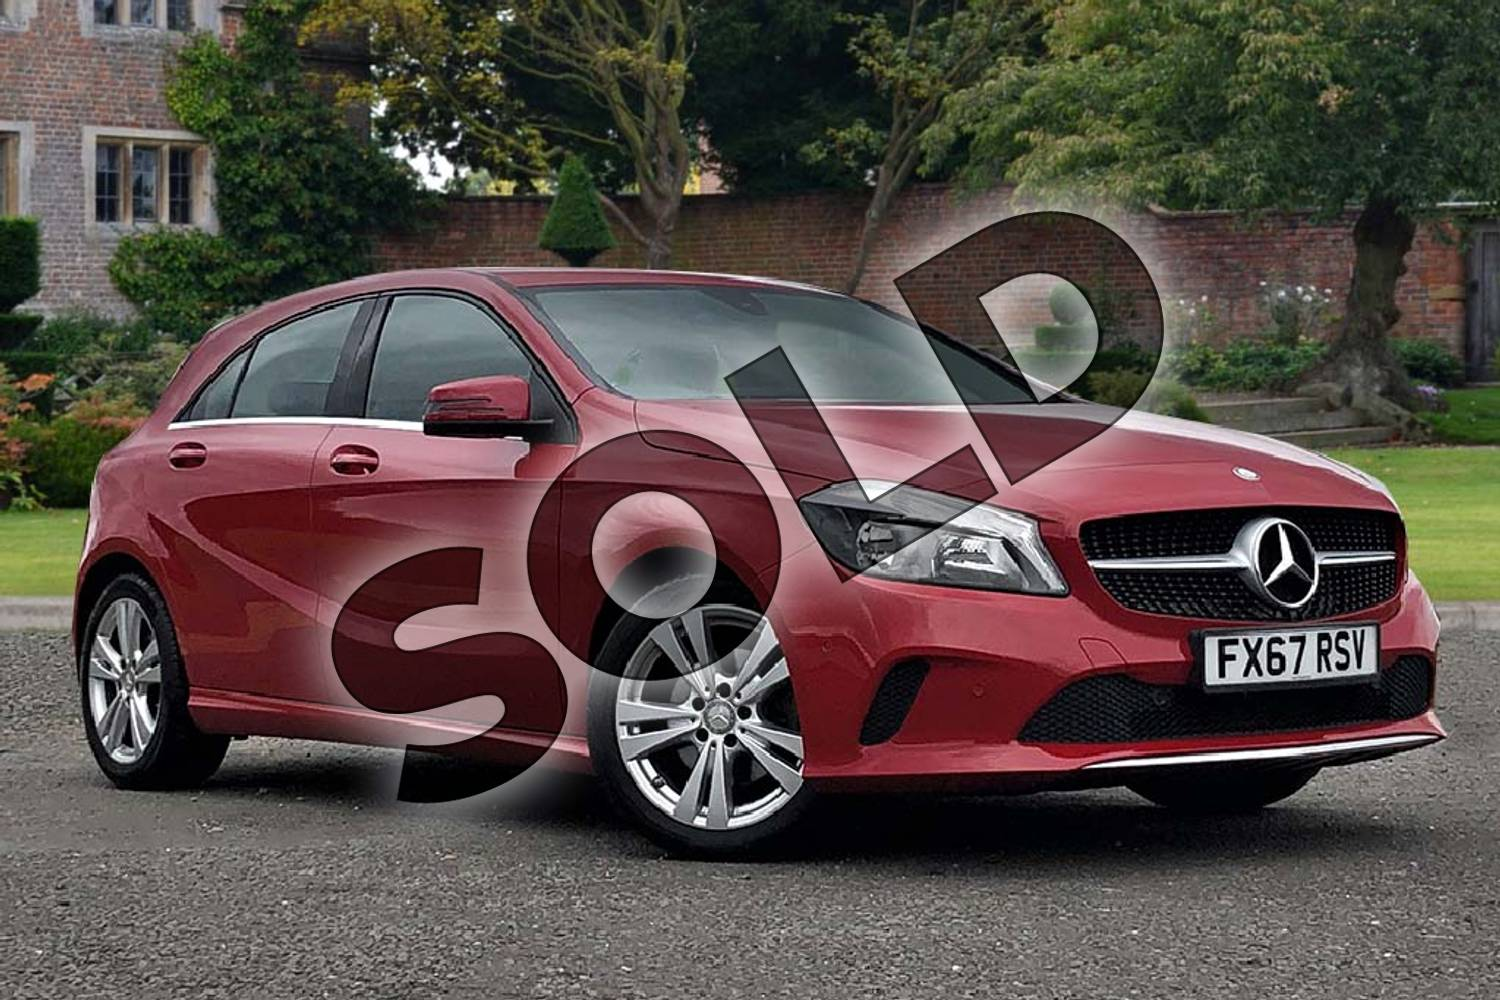 2017 Mercedes-Benz A Class Hatchback A180 Sport 5dr in Jupiter Red at Mercedes-Benz of Lincoln